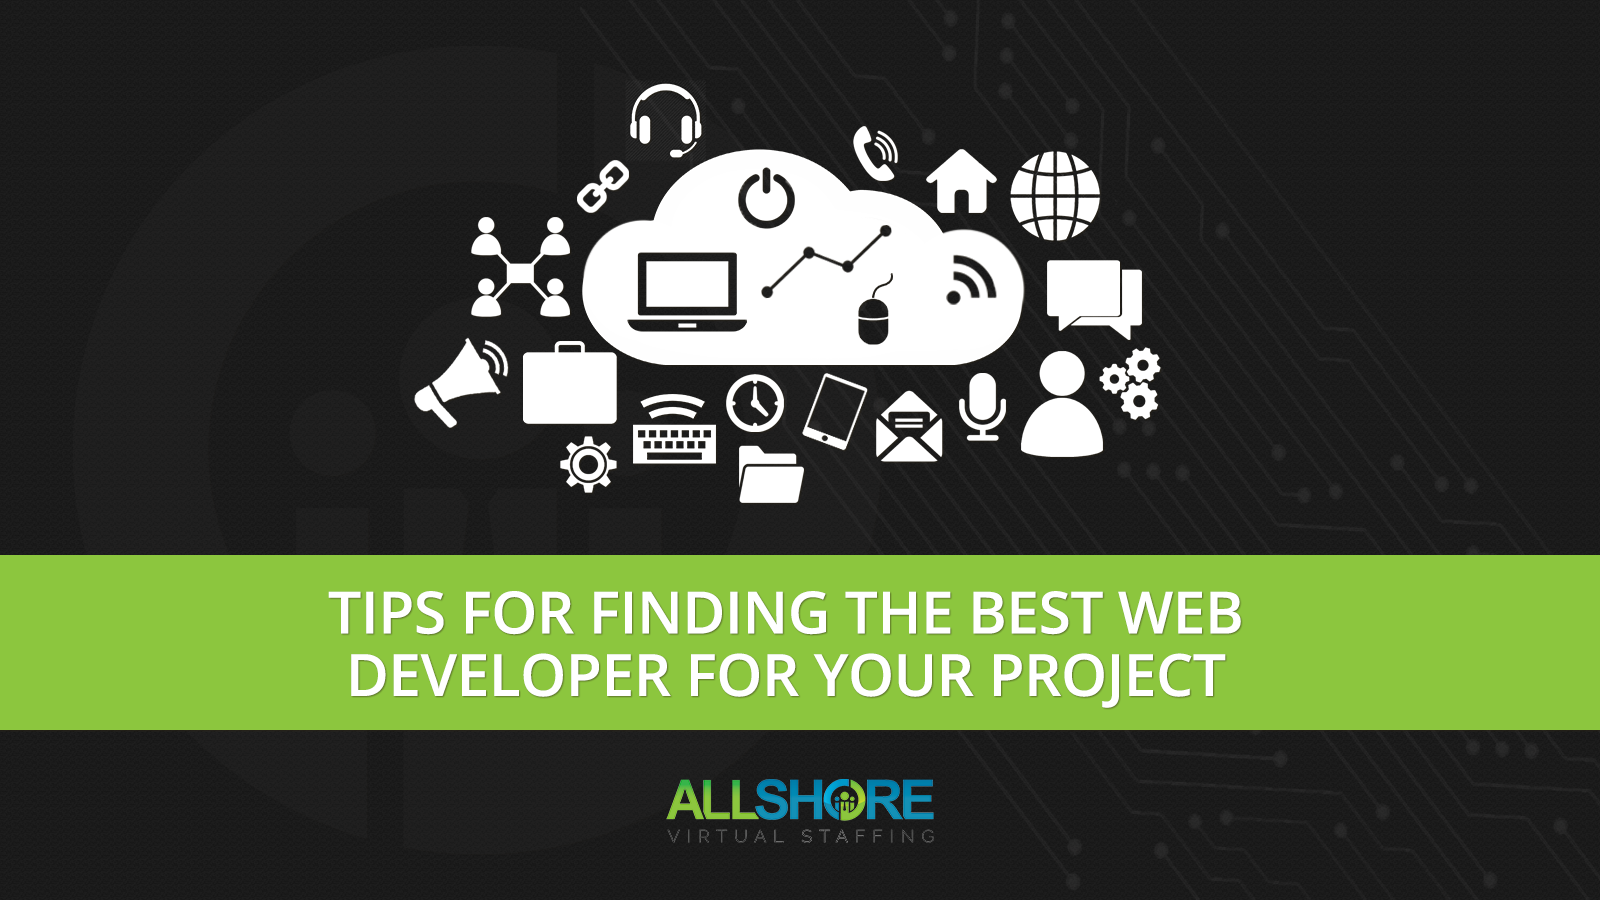 Tips for Finding the Best Web Developer for Your Project